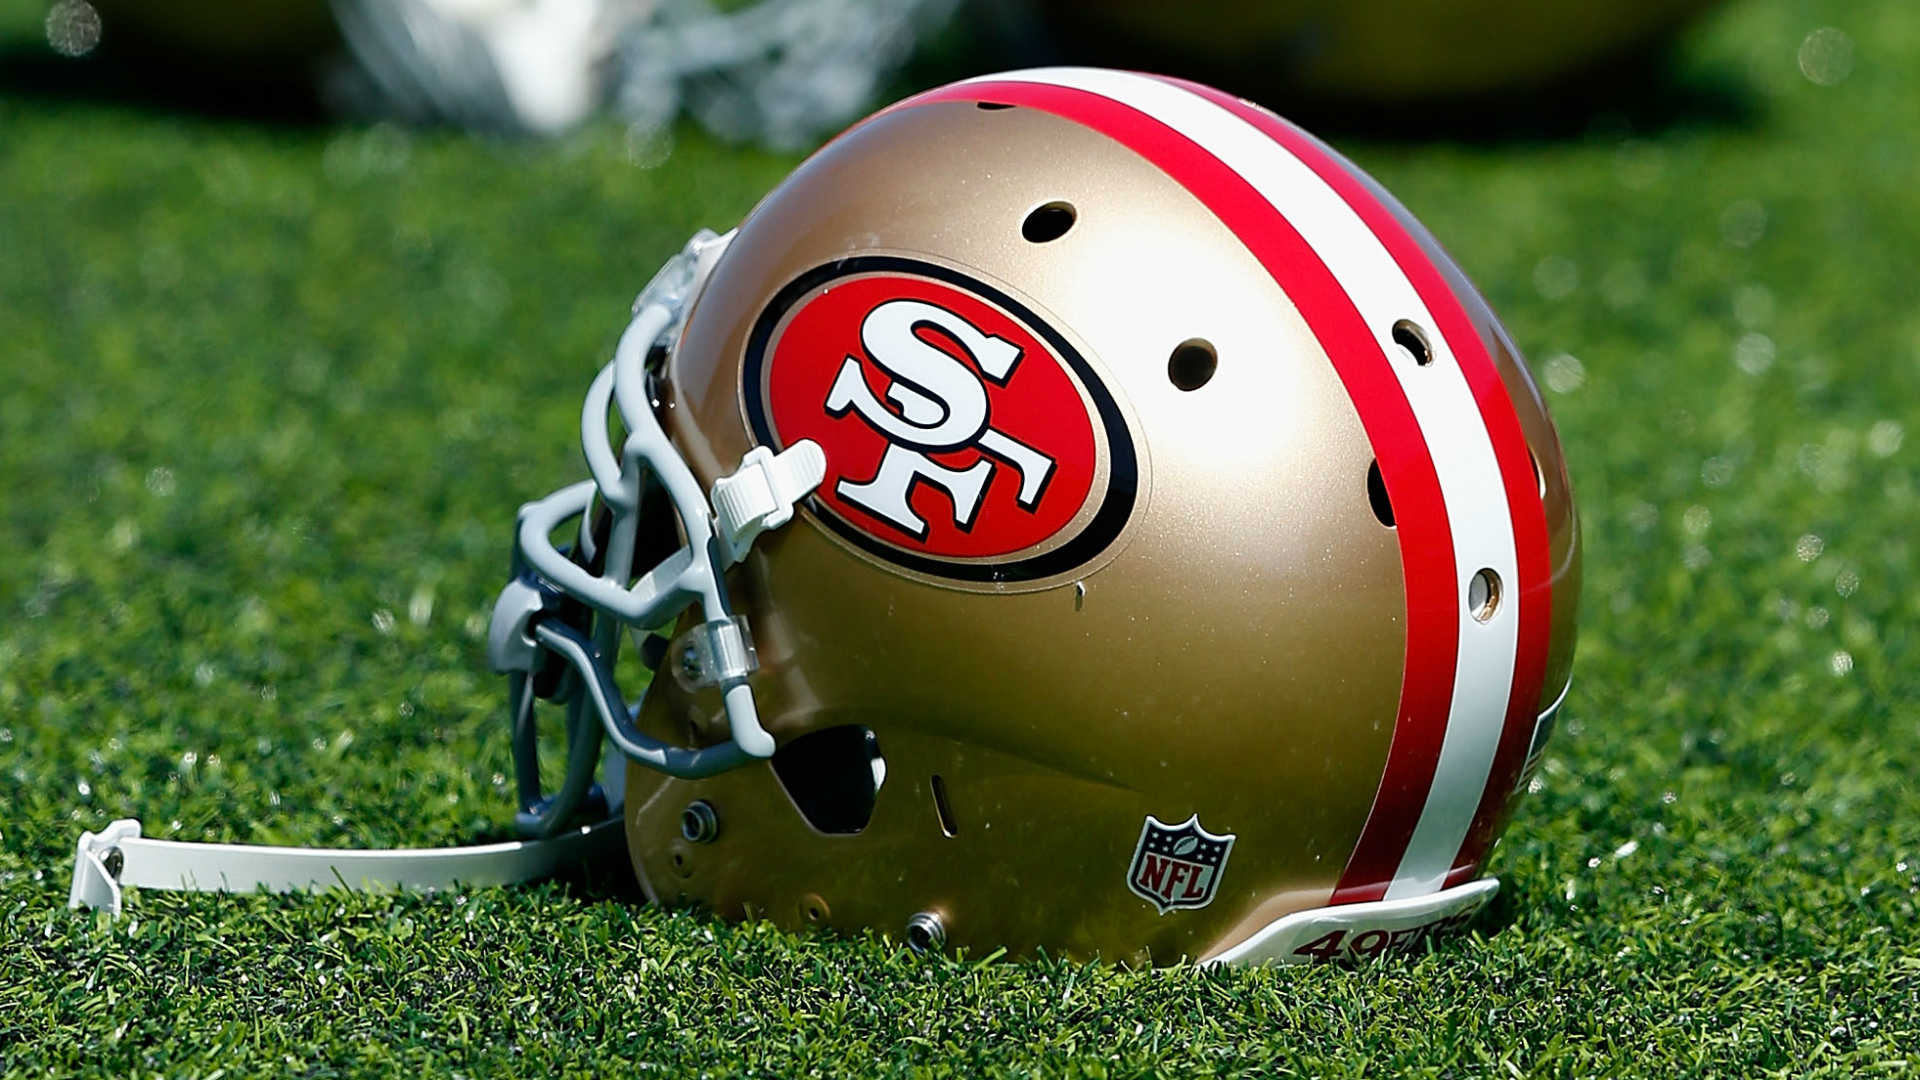 49ersfield-080615-usnews-getty-ftr_ly70bqft0nkw1h43ng3krdvmt